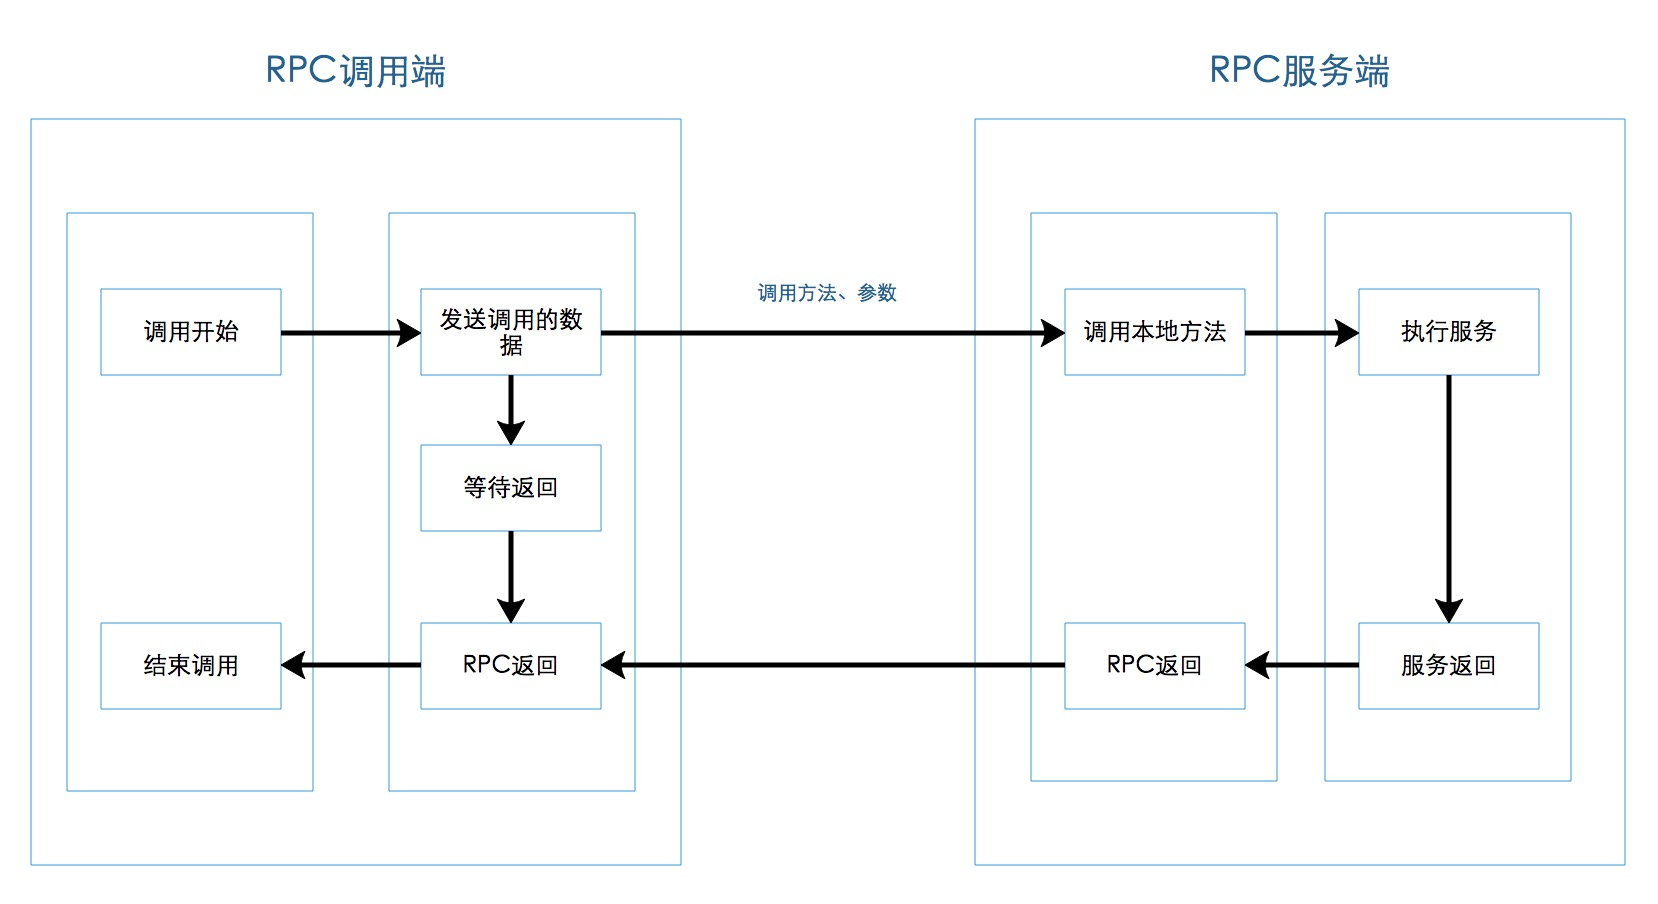 RPC call process